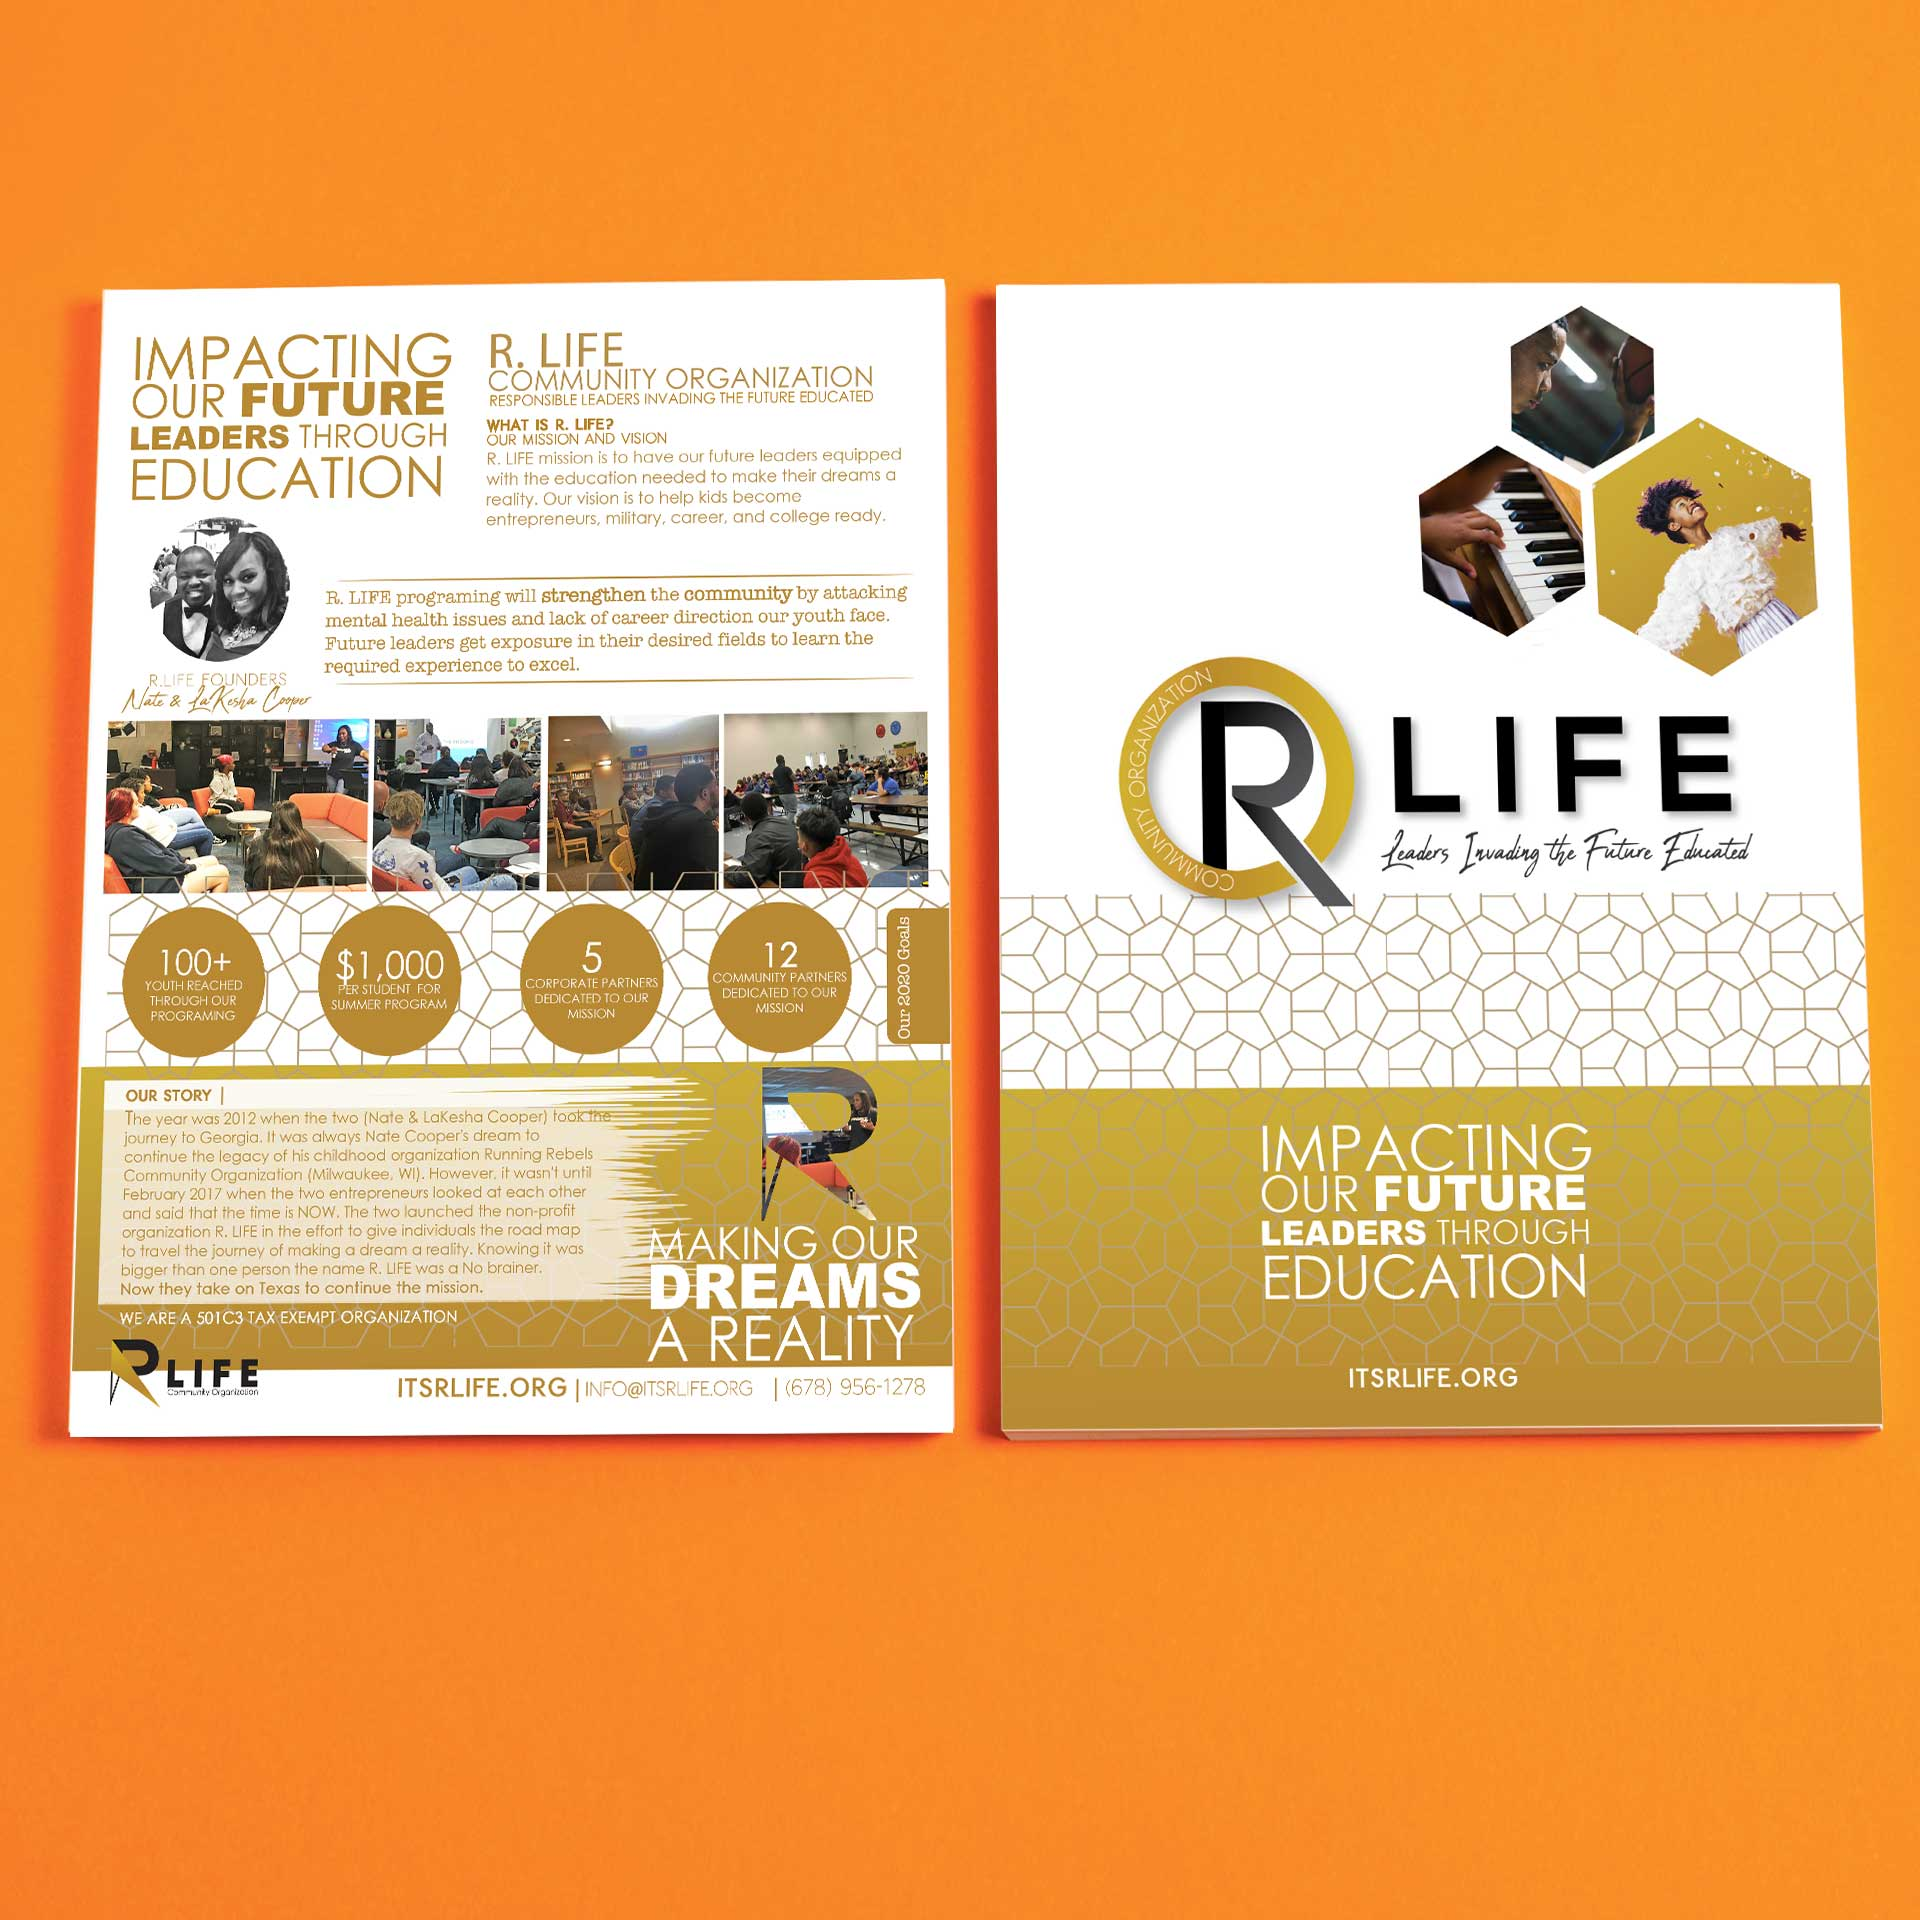 R LIFE Community Organization Non Profit One Pager Design